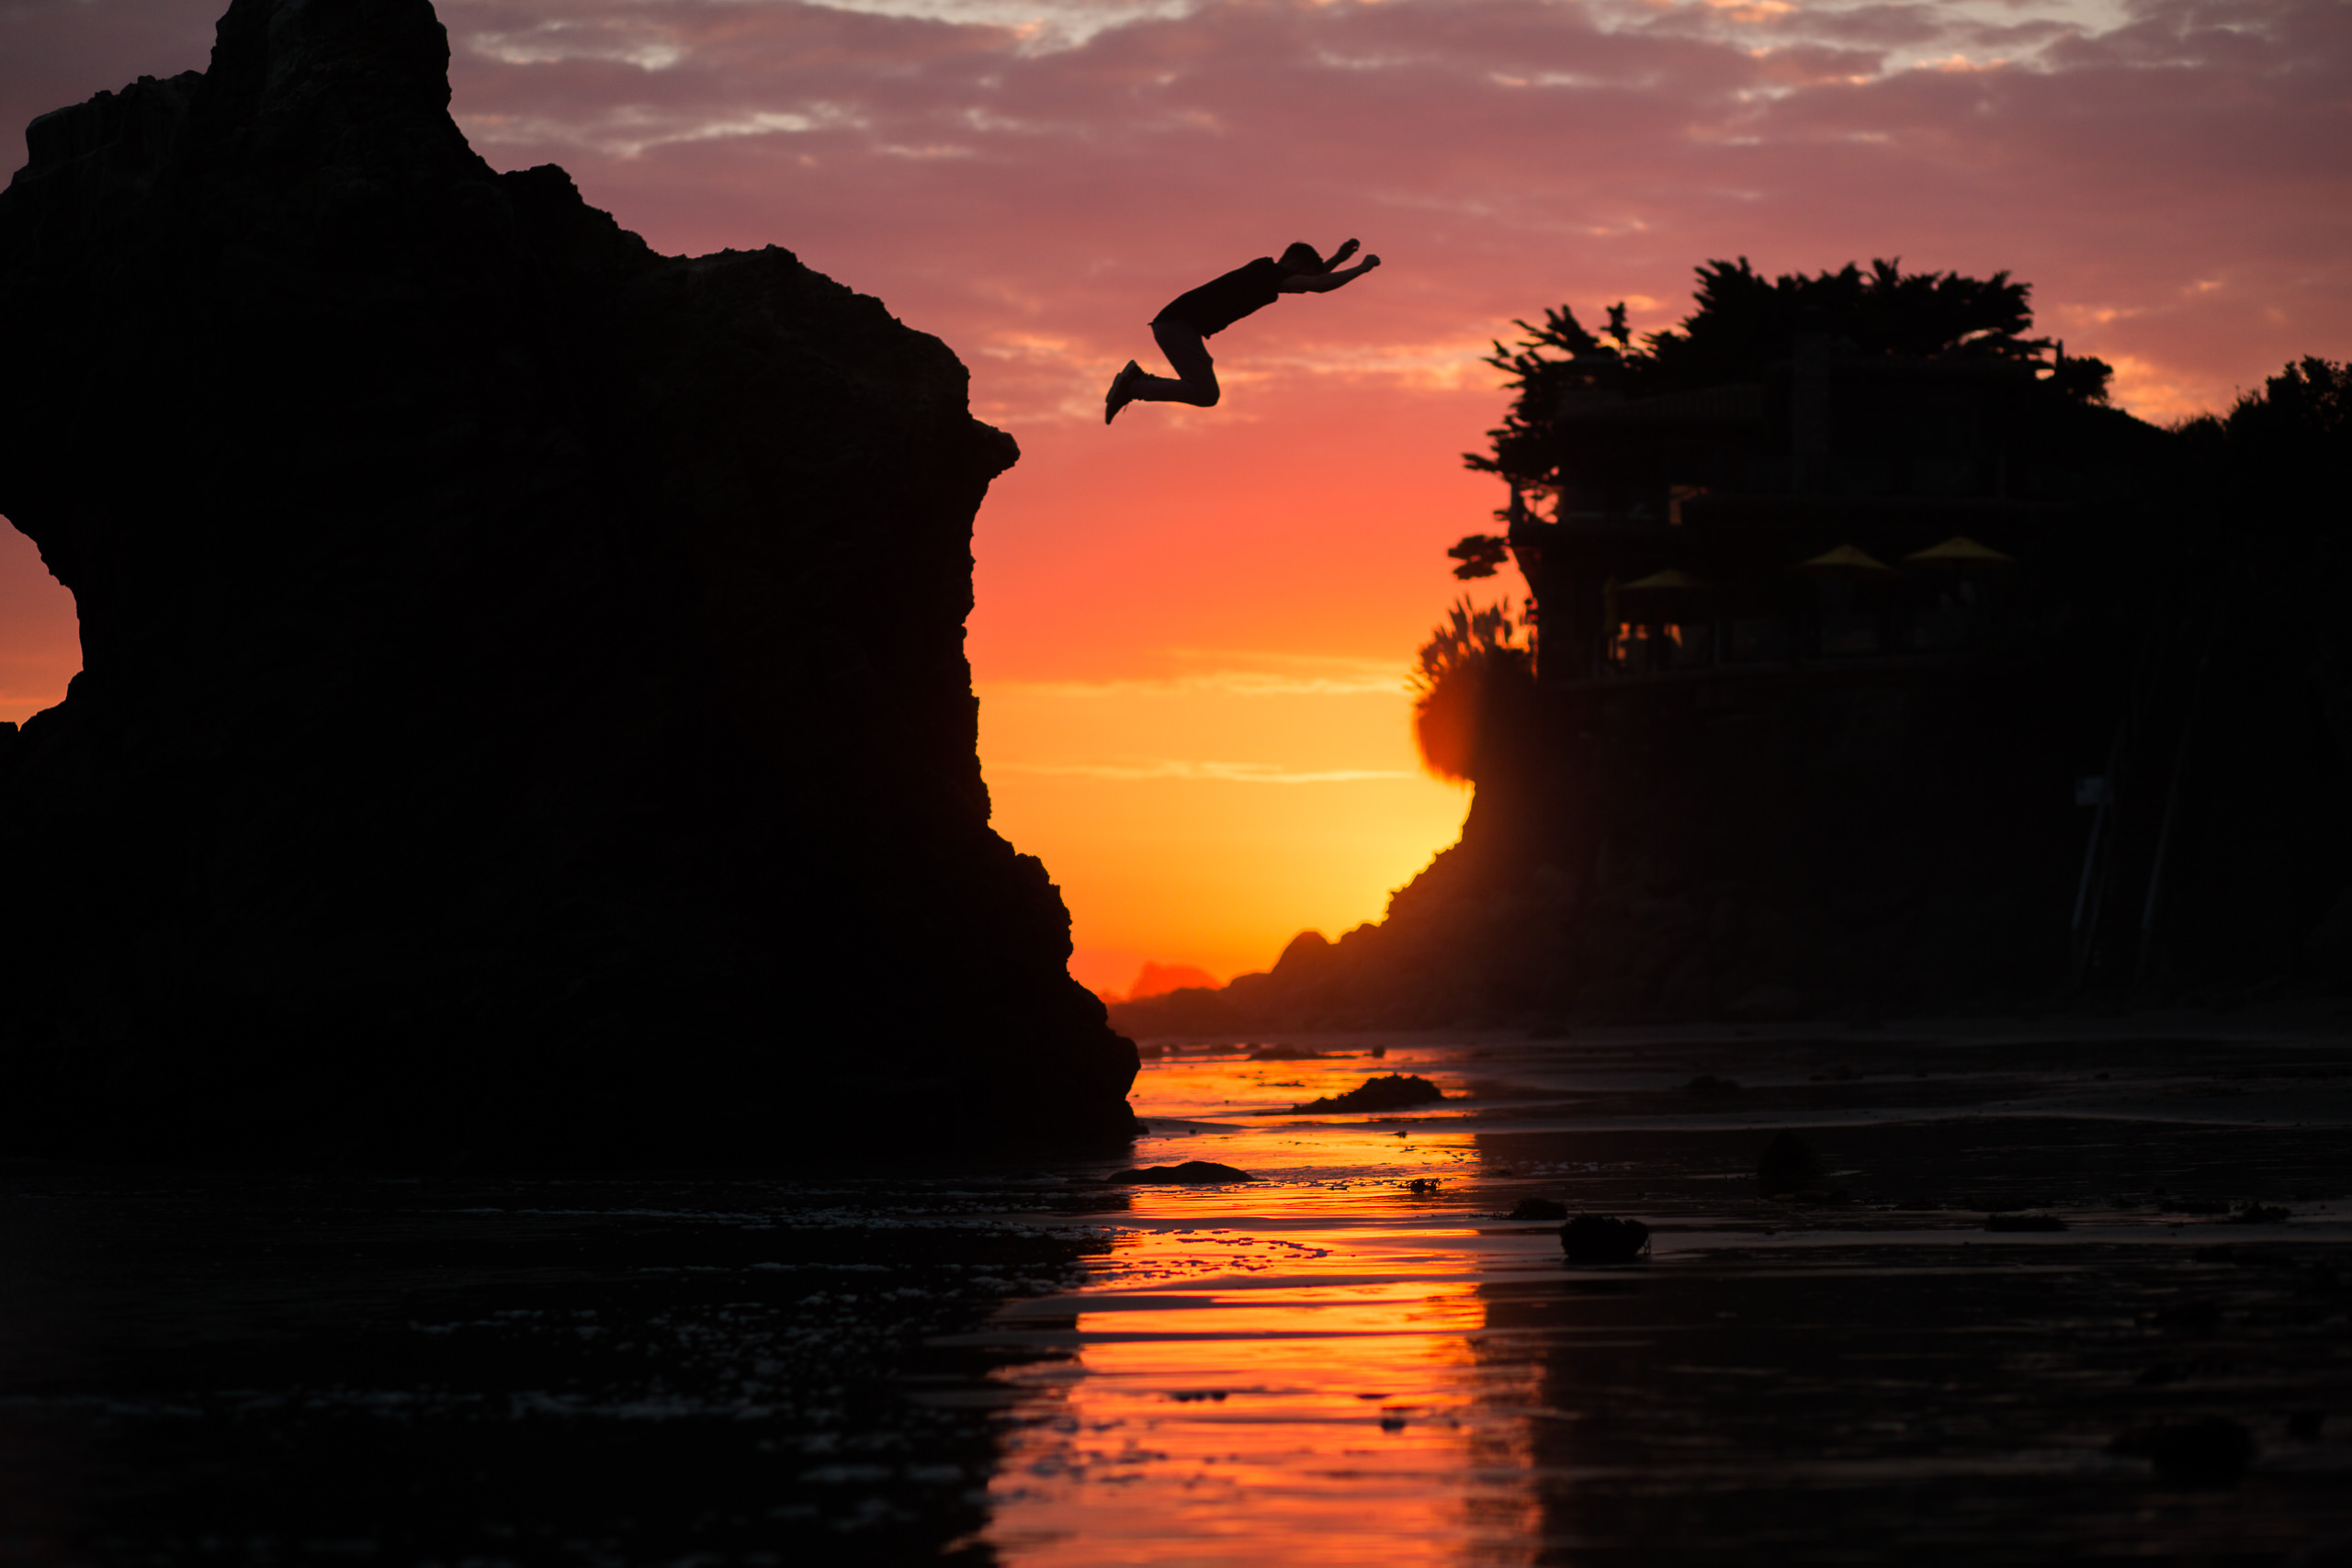 james kingston sunset beach jump